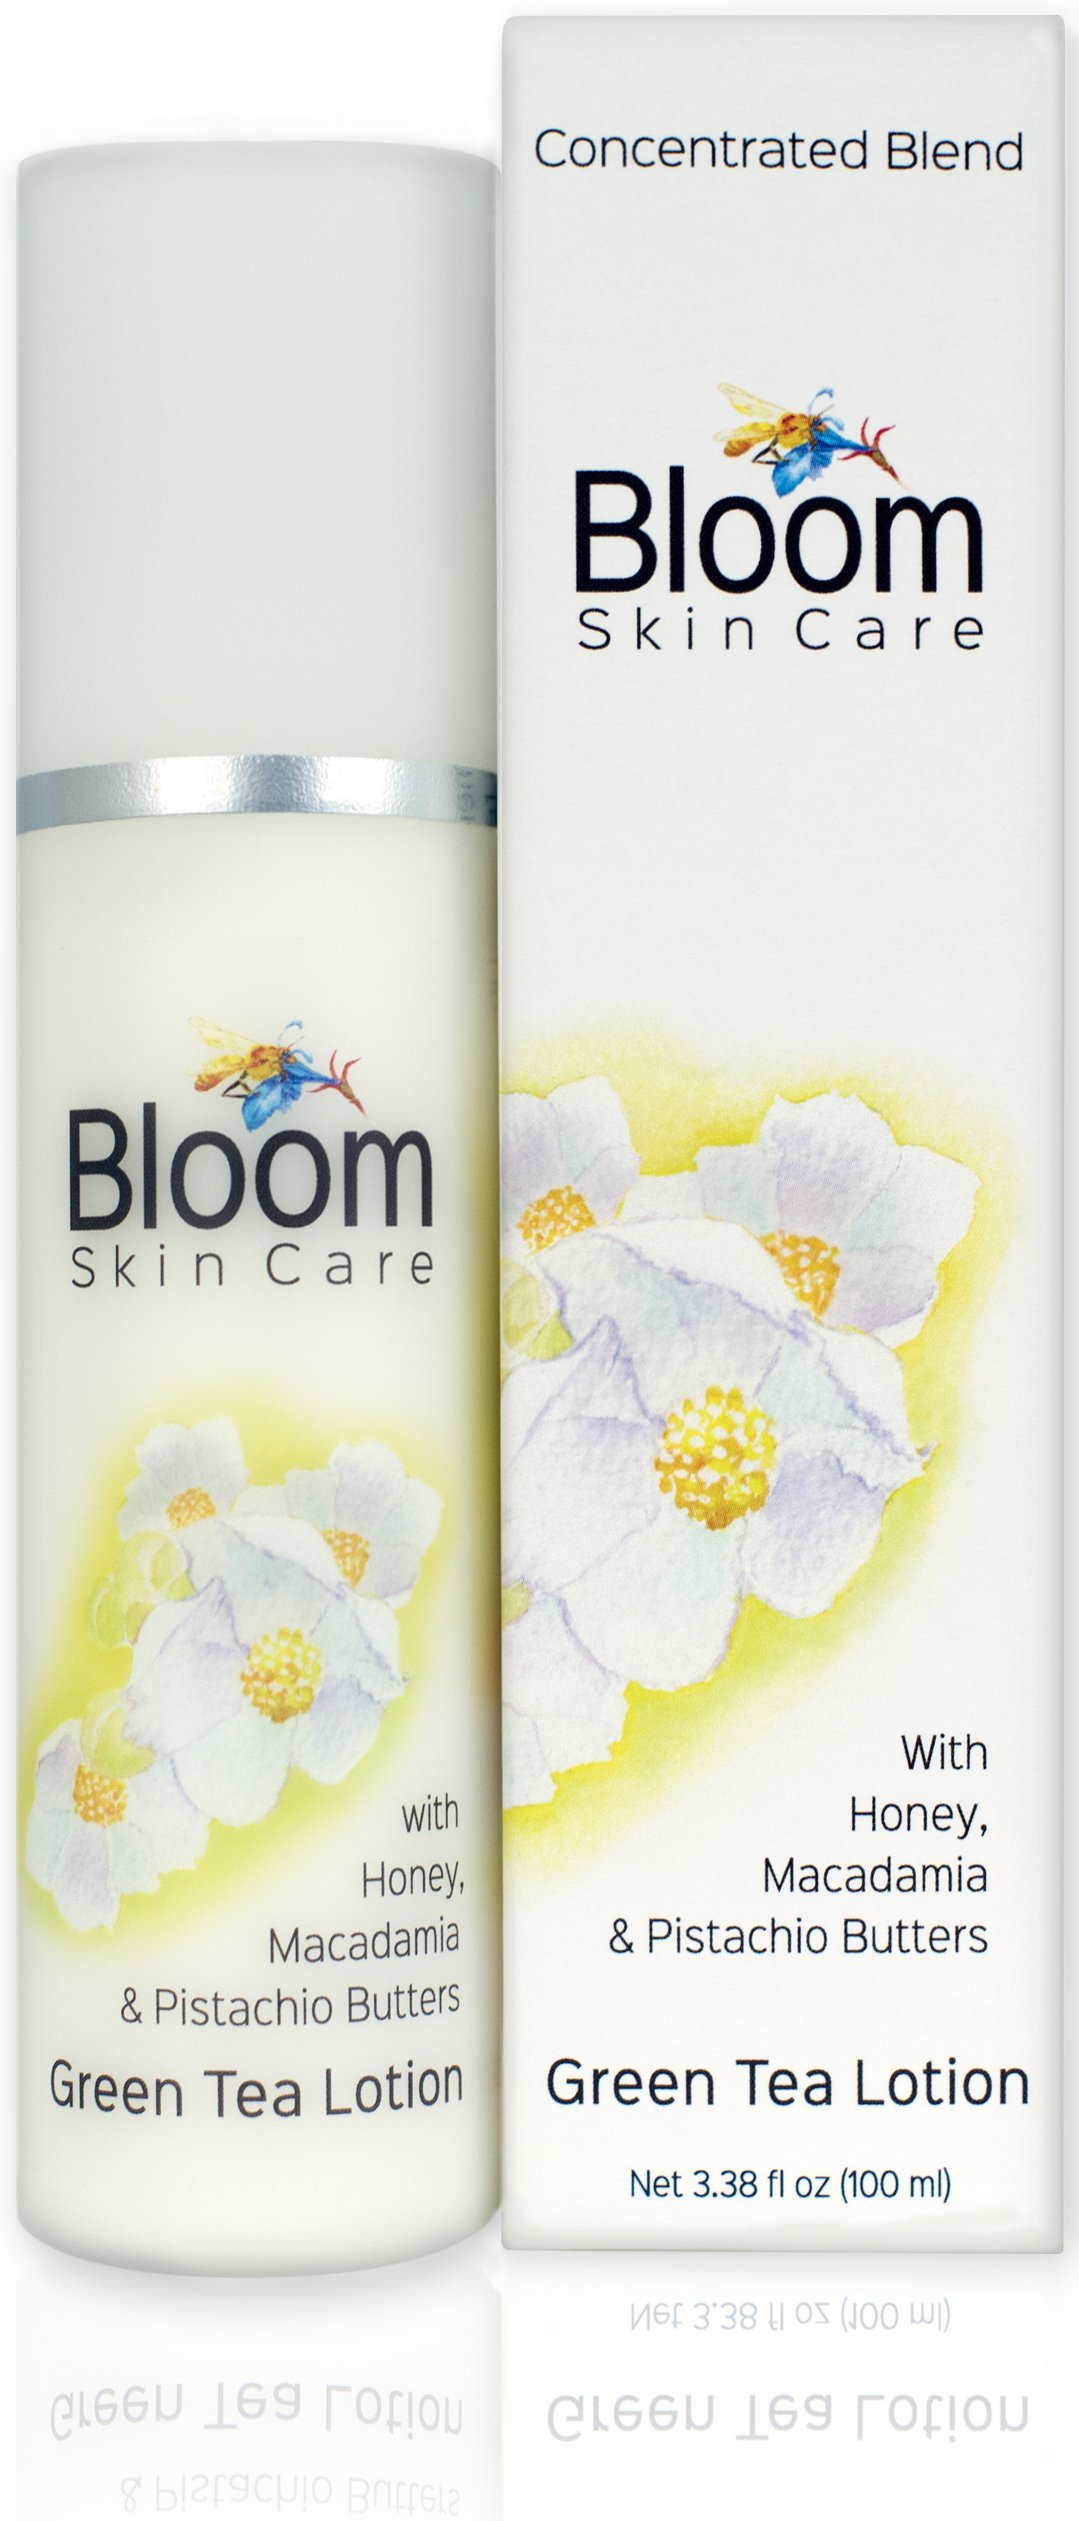 Bloom Skin Care Hand and Body Lotion - Green Tea 3.38 oz - Natural Moisturizing Cream for Women and Men - Paraben Free and Cruelty Free - Anti Aging with Powerful Ingredients and Honey